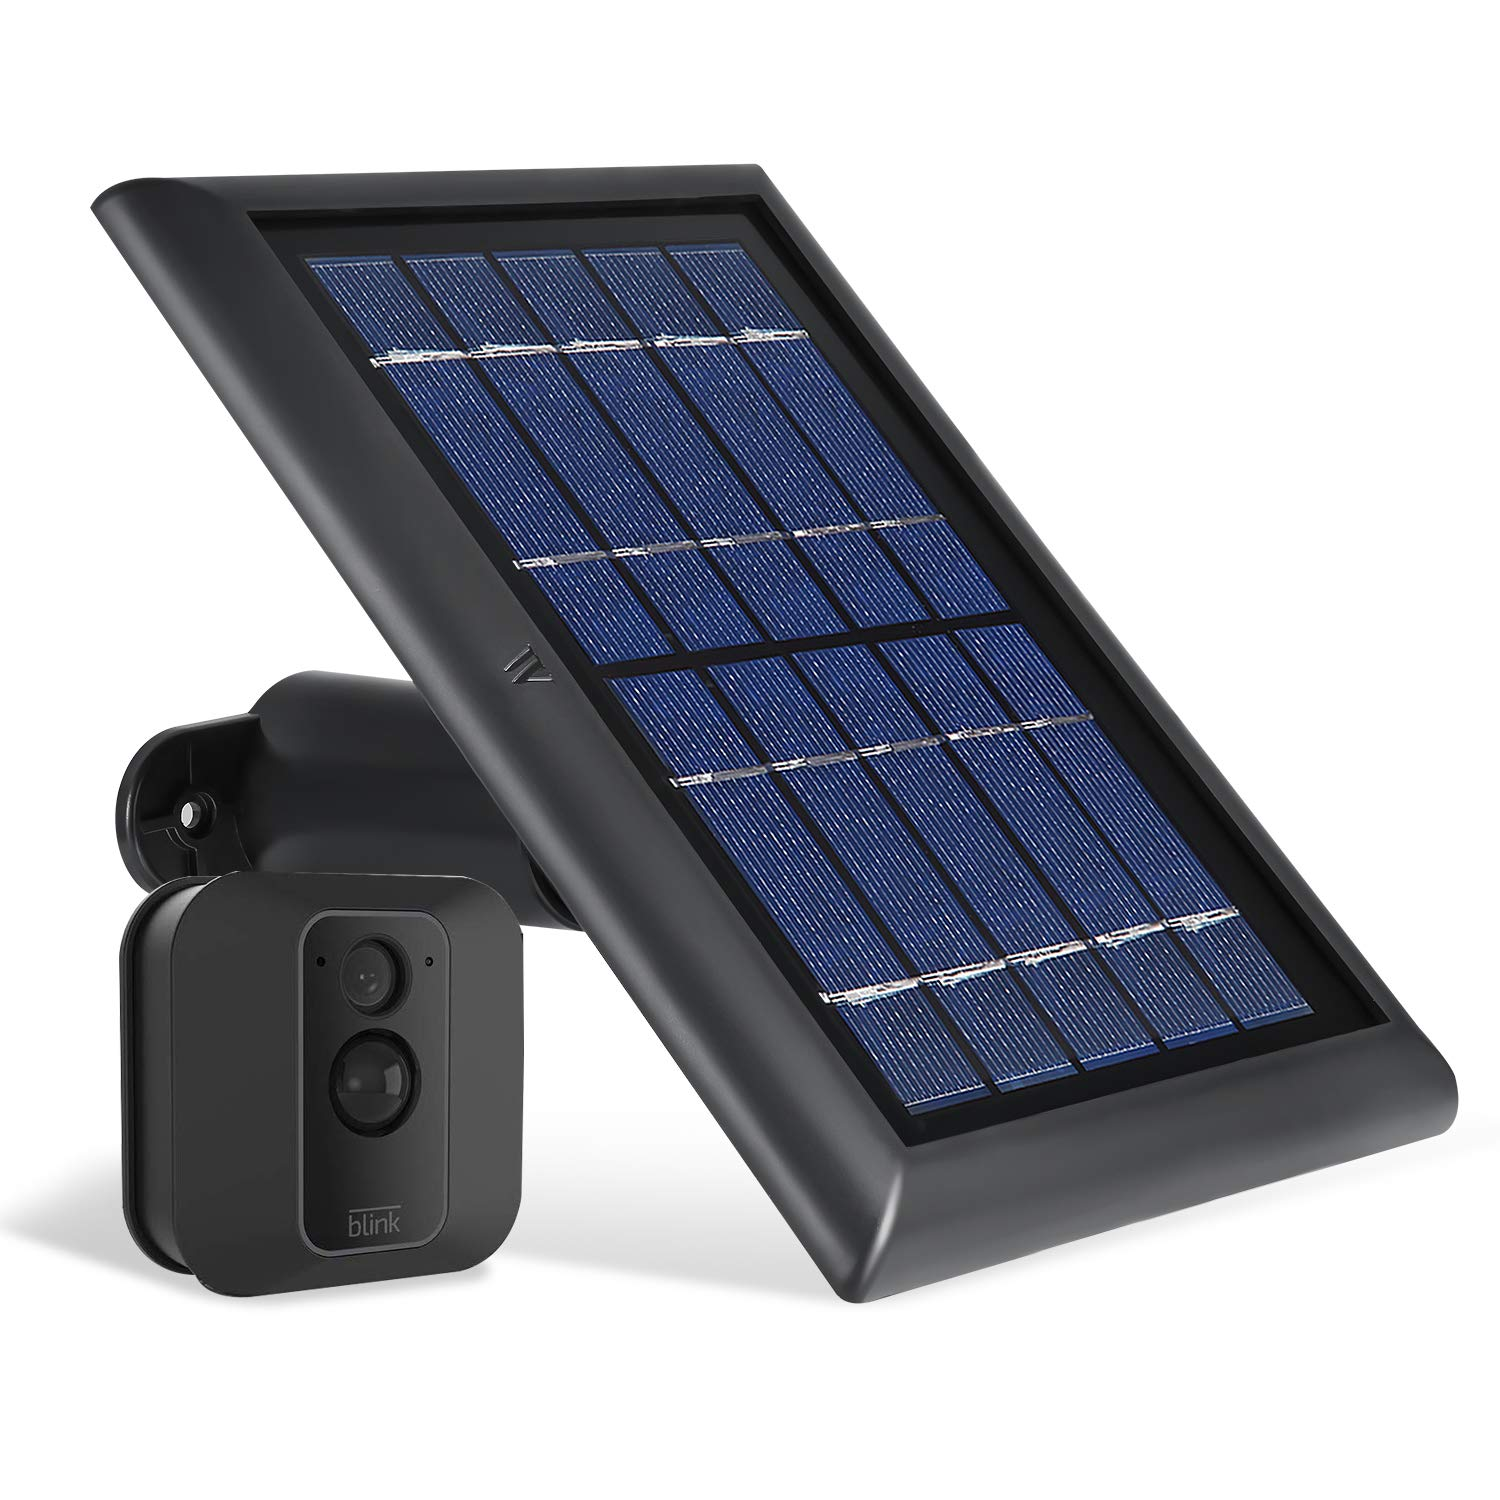 Wasserstein Solar Panel with Internal Battery Compatible with Blink XT and Blink XT2 Outdoor Camera (Black) by Wasserstein